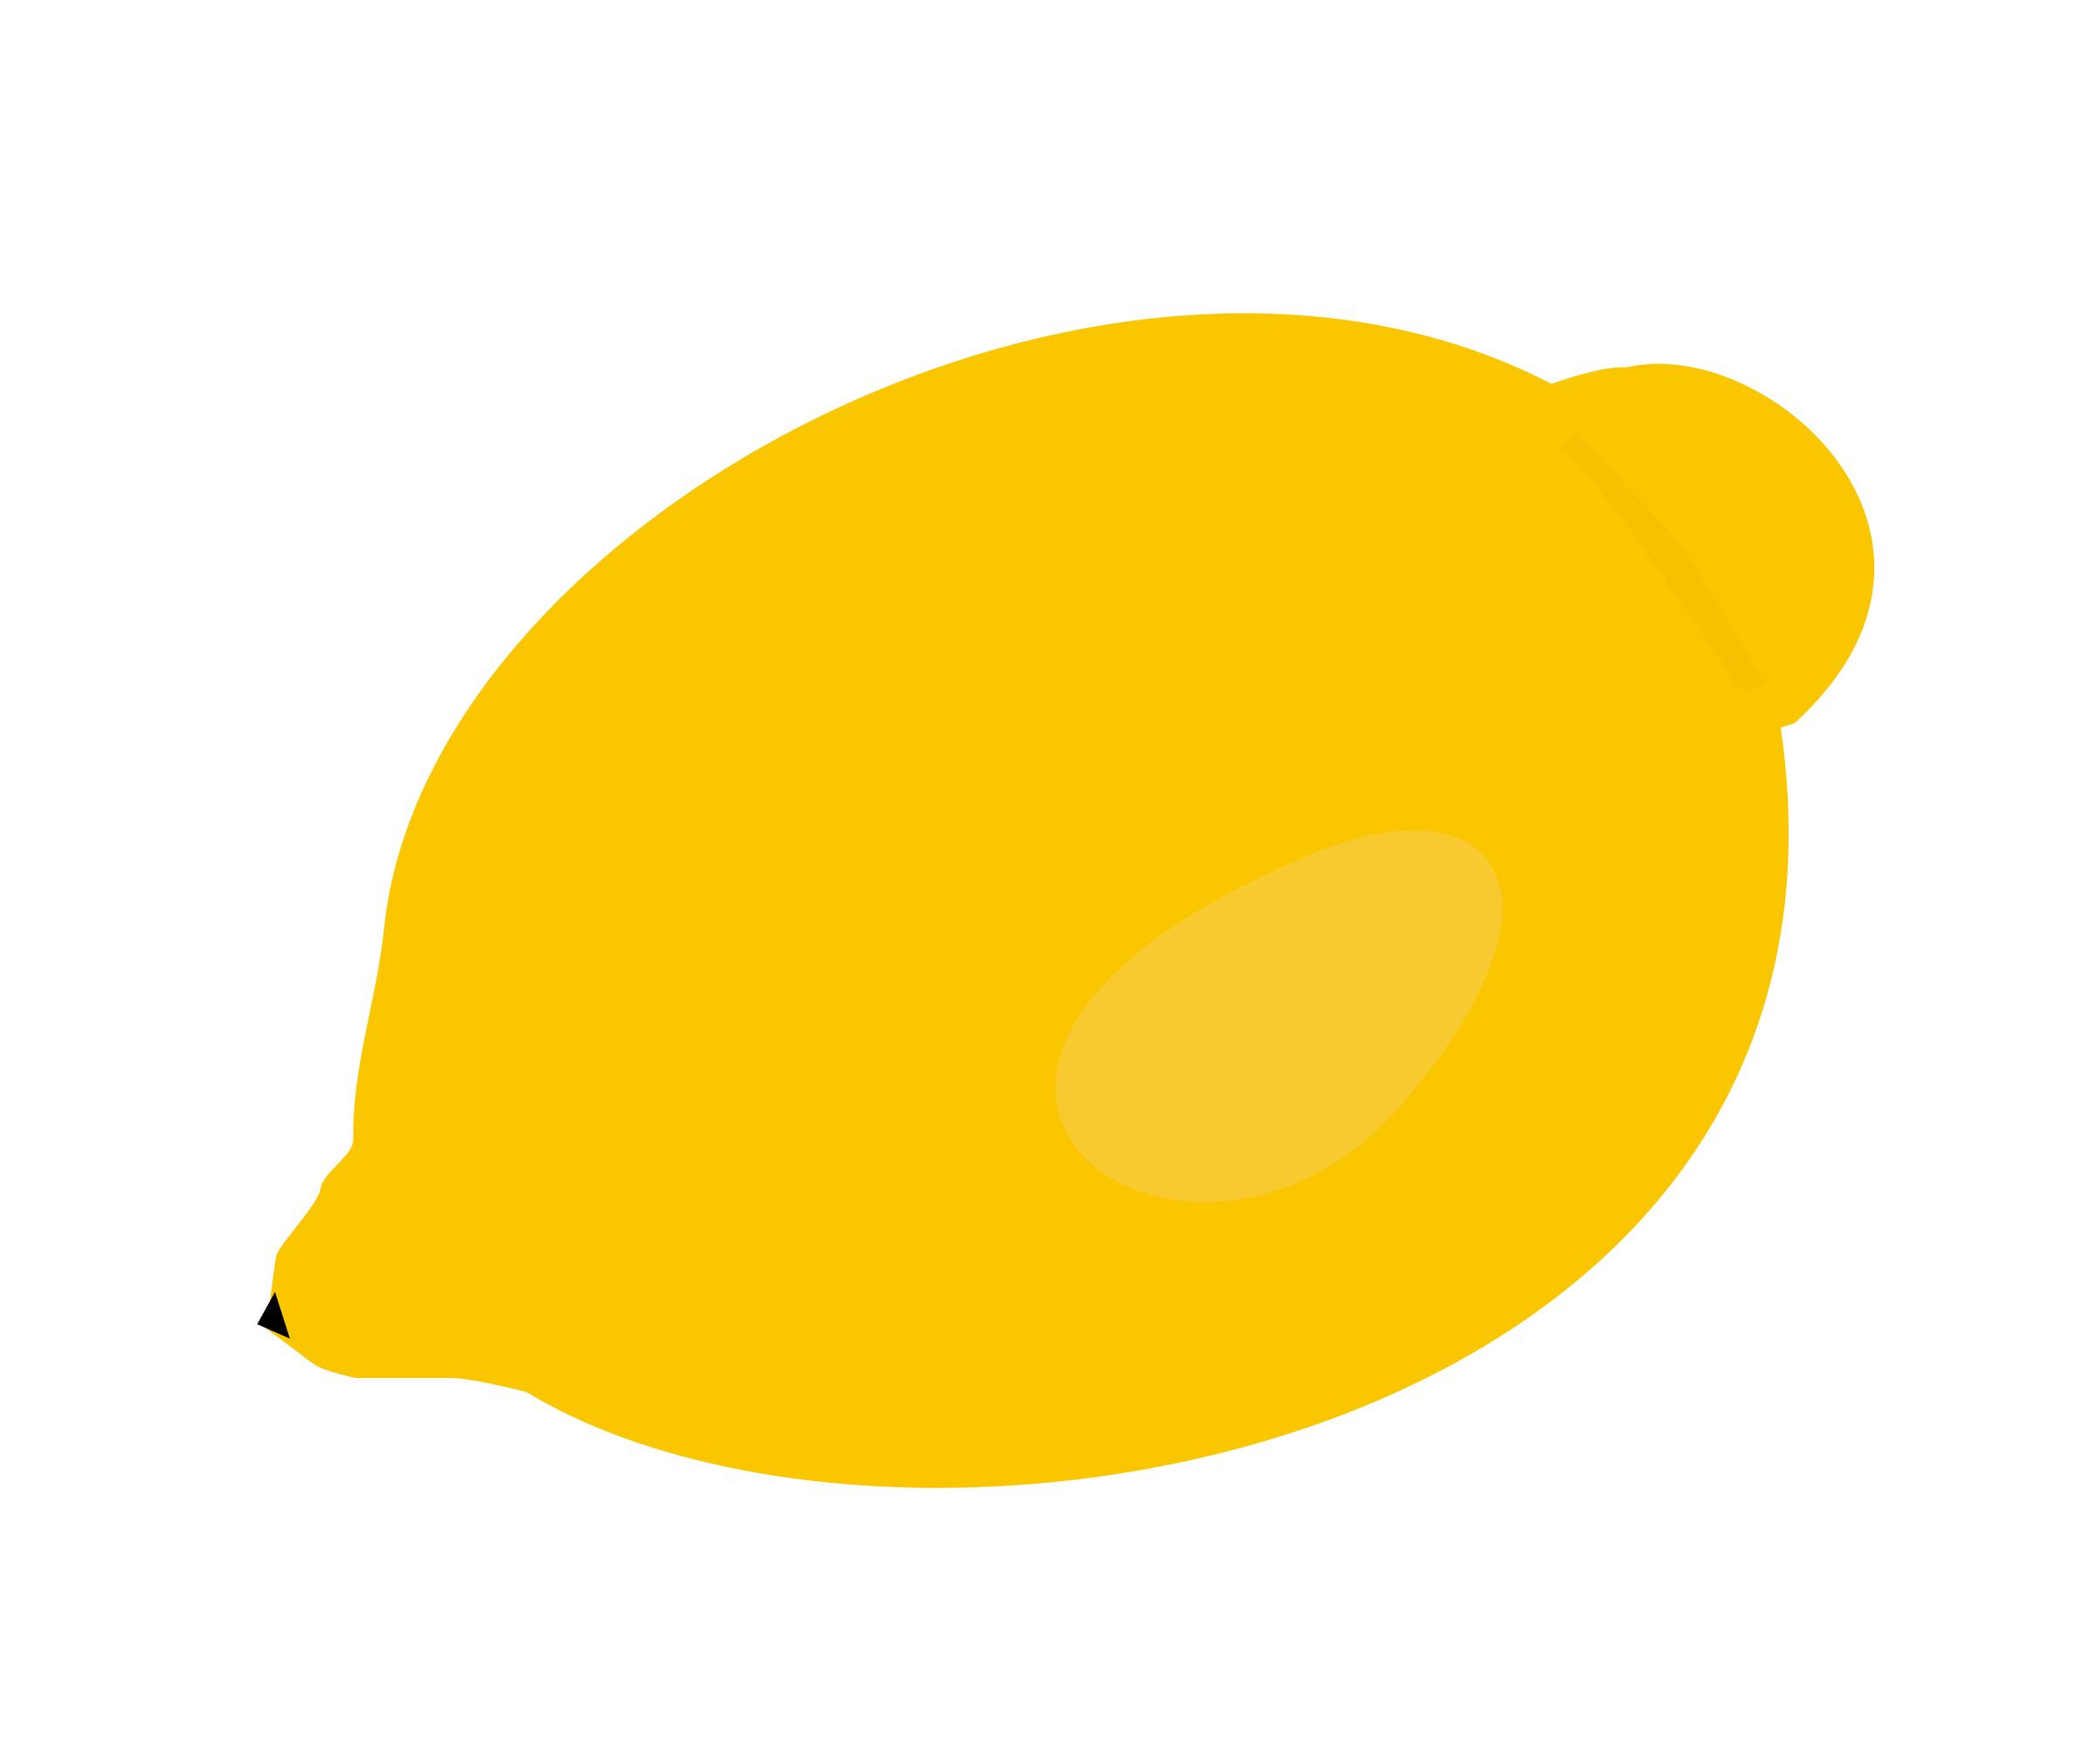 Lemon png icon web. Lemons clipart high resolution